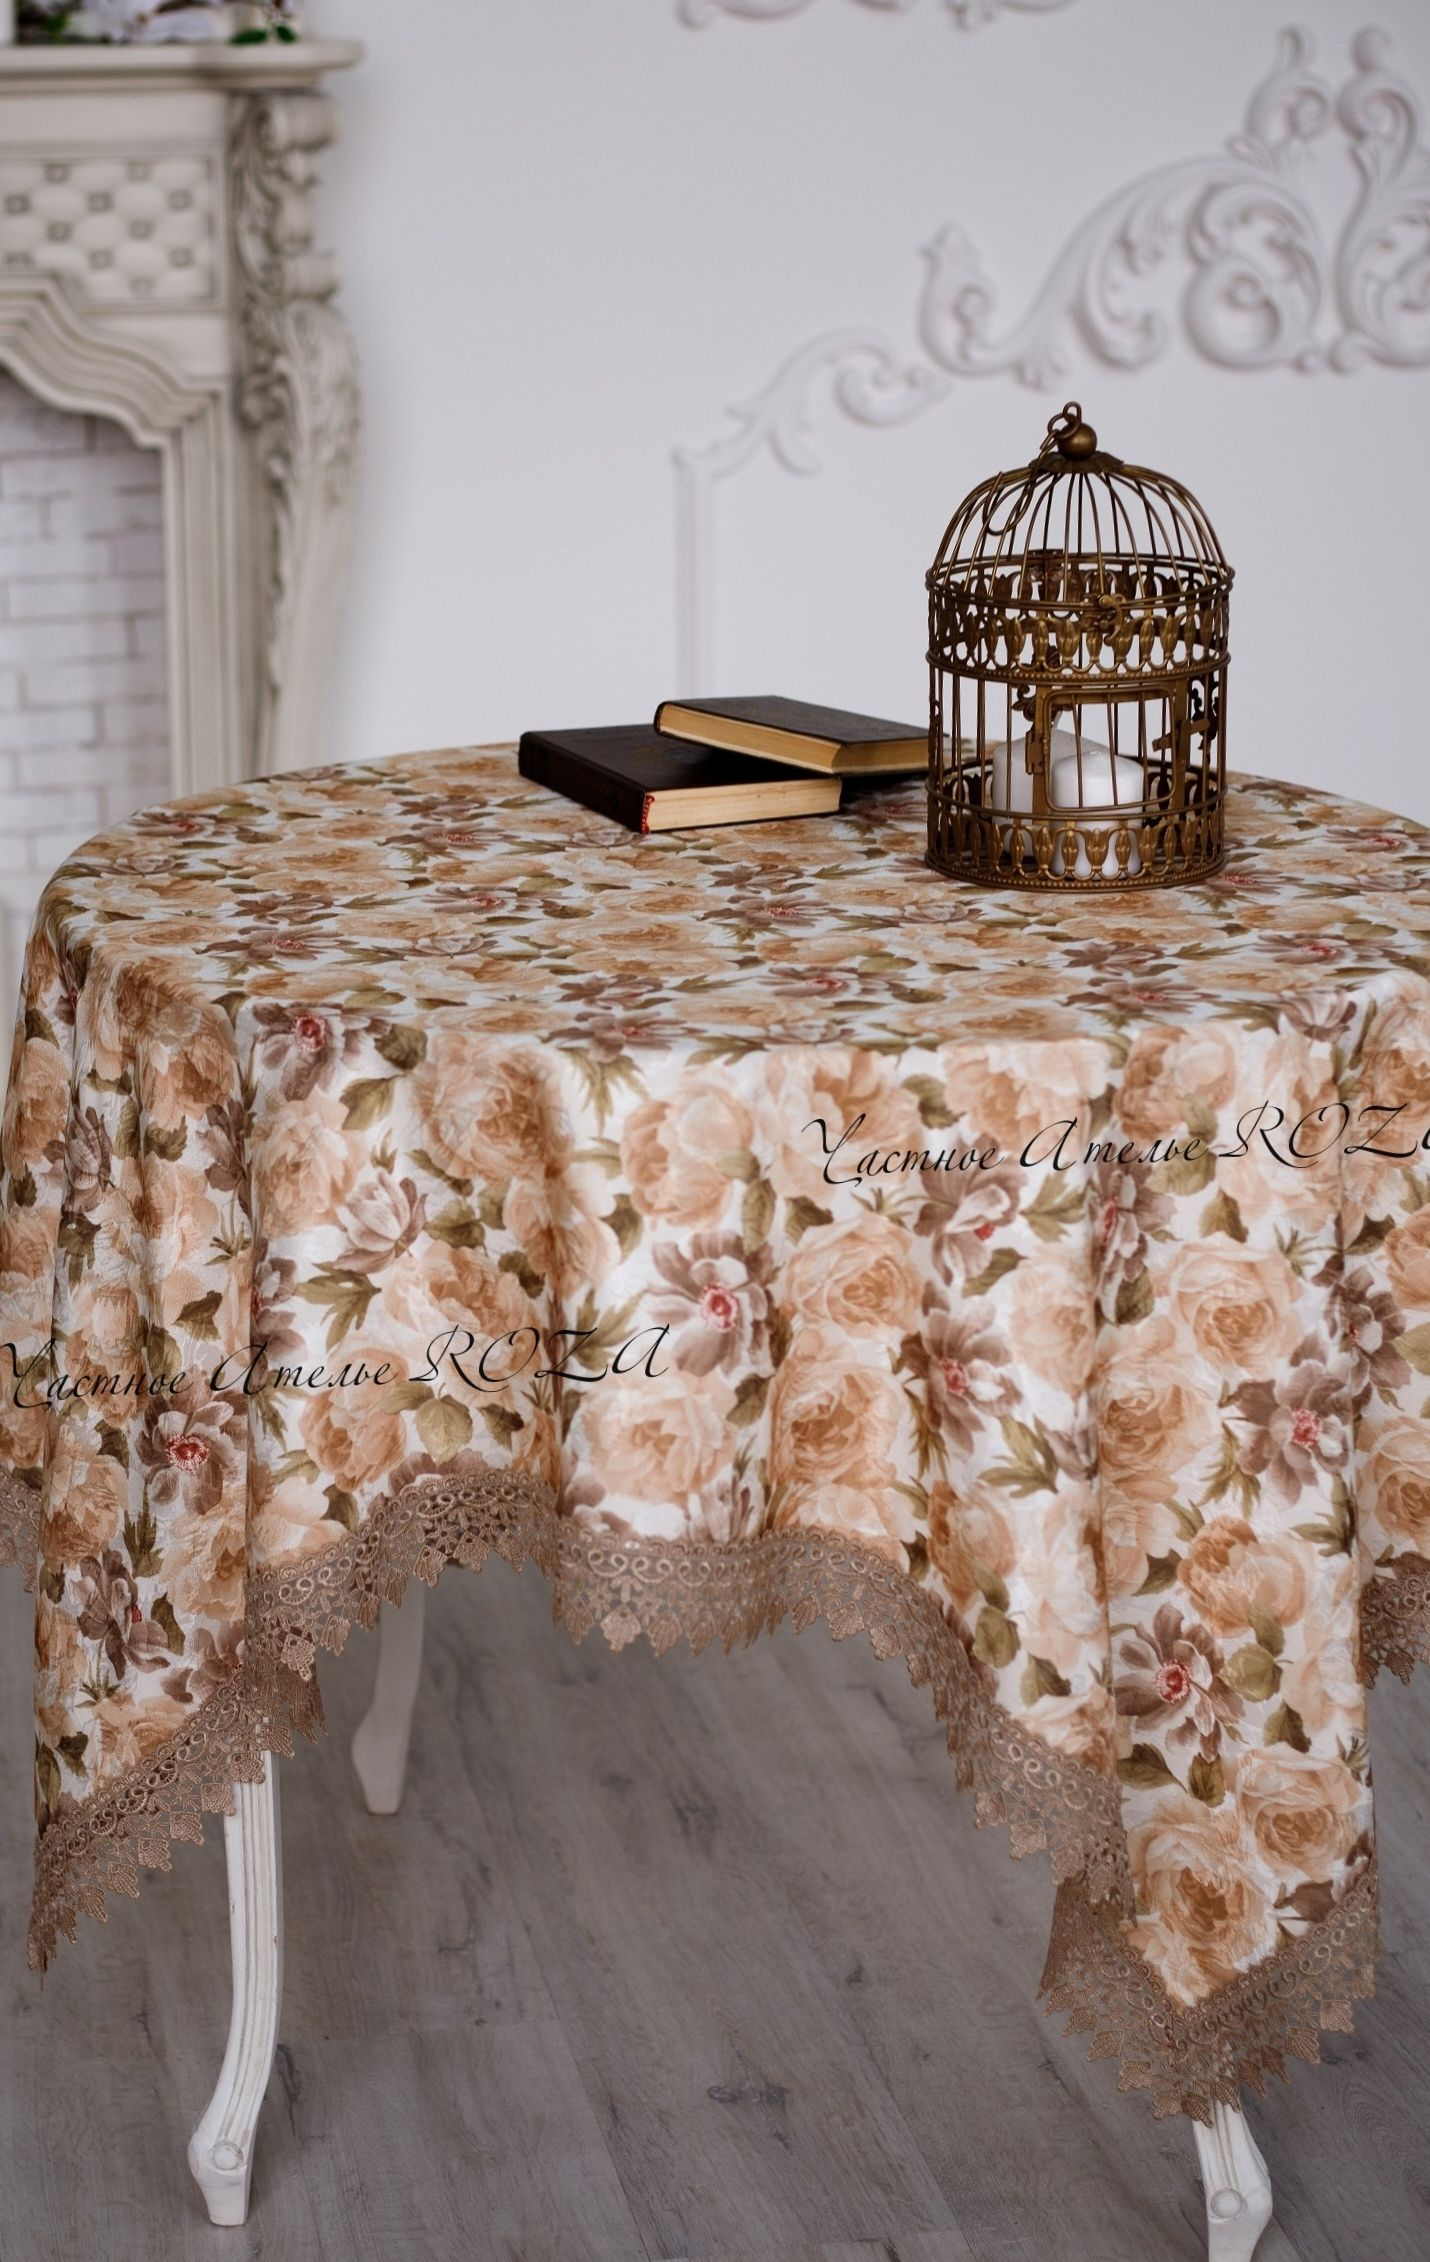 Tablecloth with lace lion